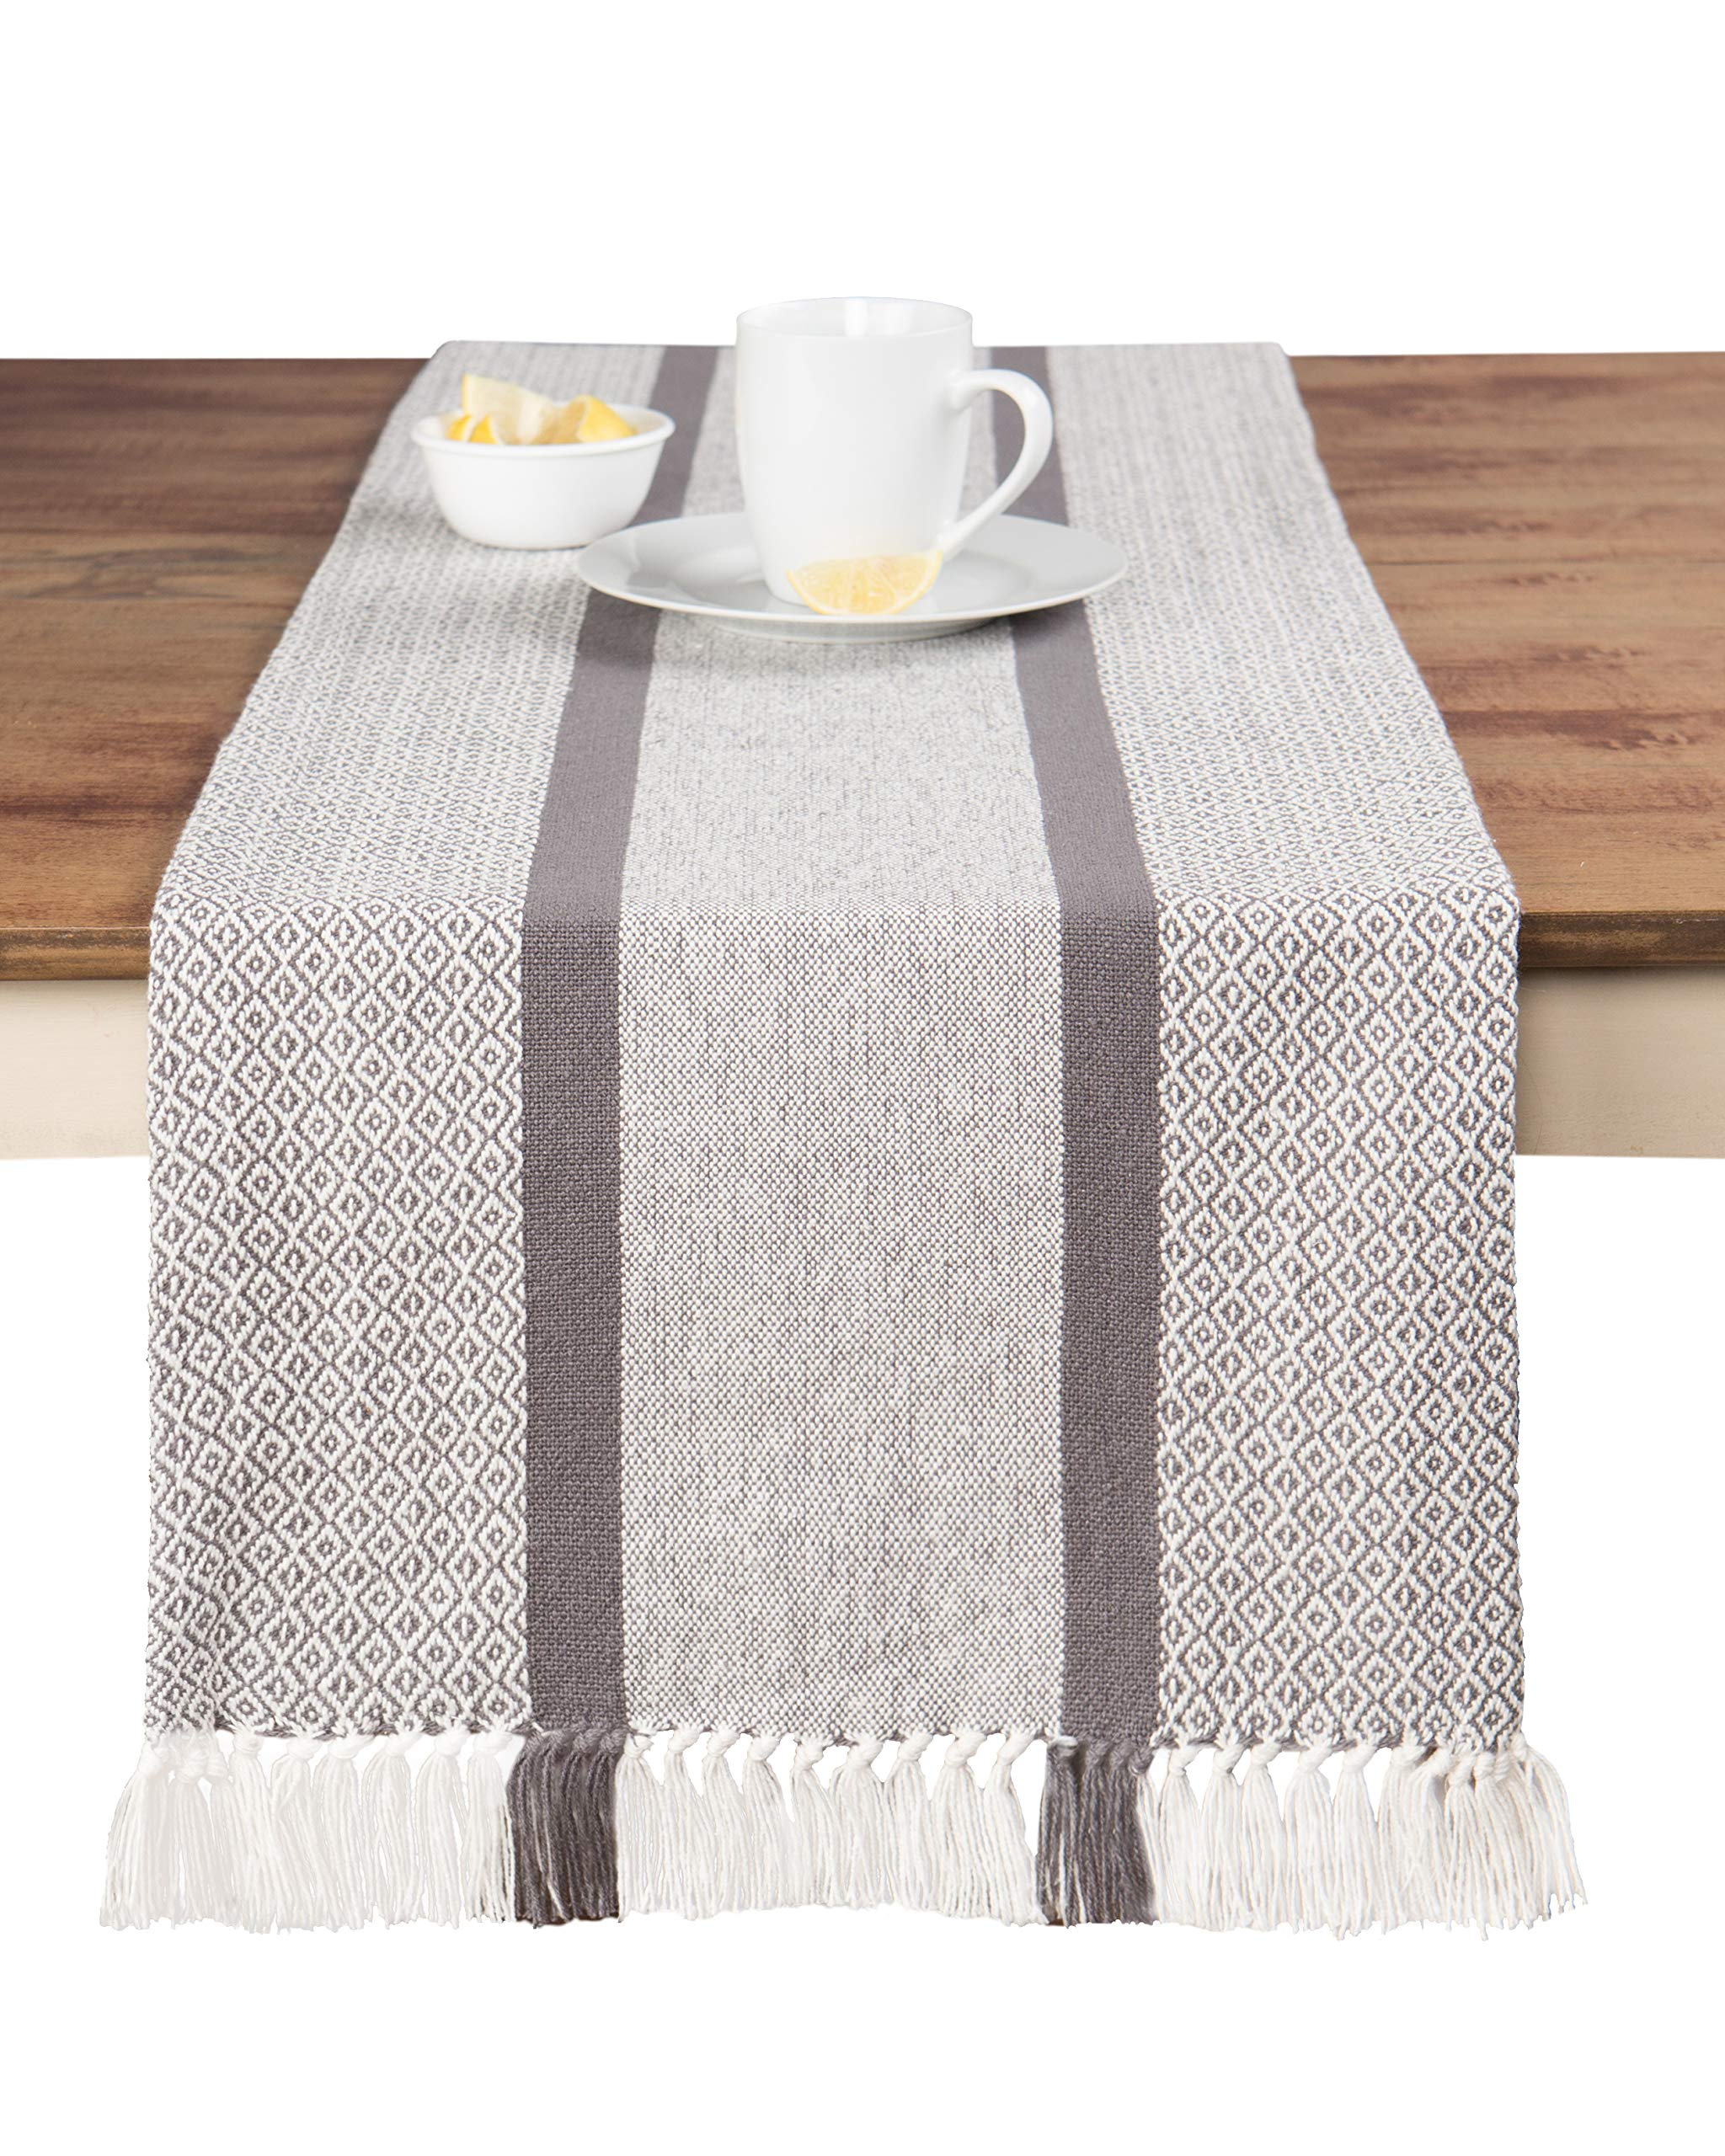 Sticky Toffee Cotton Woven Table Runner with Fringe, Traditional Diamond, Gray, 14 in x 72 in by Sticky Toffee